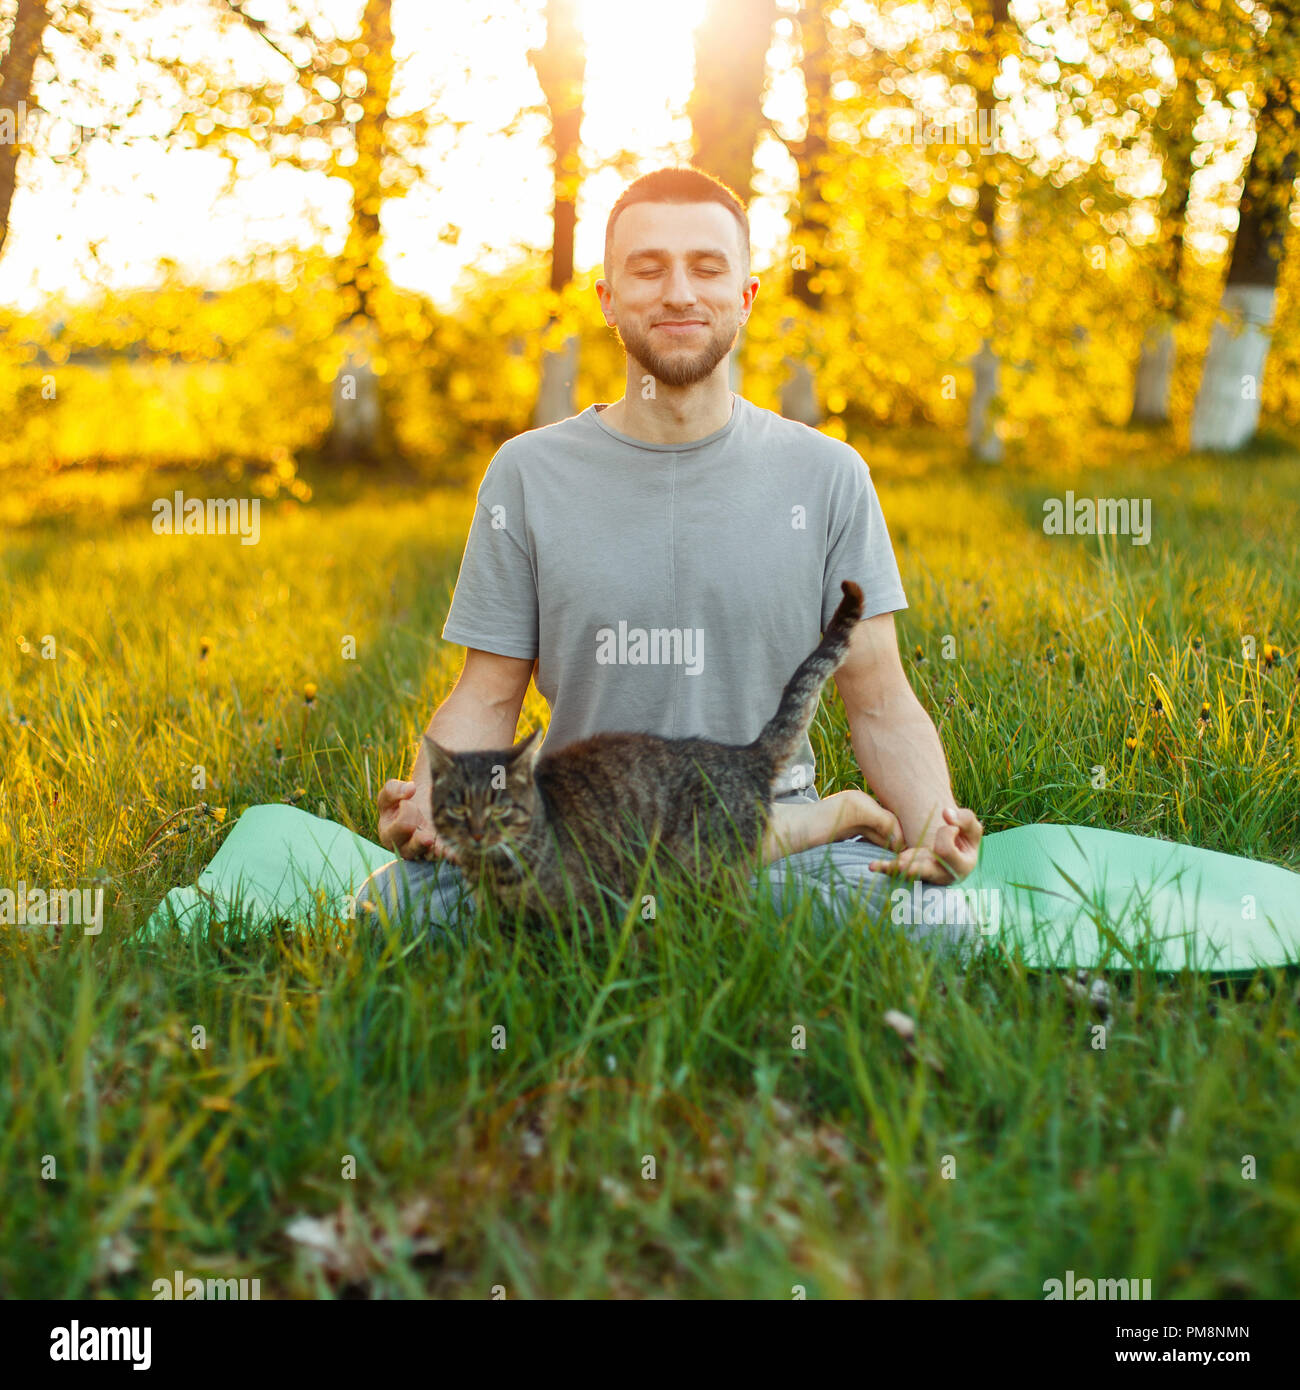 Man practicing yoga lifestyle with cat in the park at sunset, sitting in a lotus pose - Stock Image